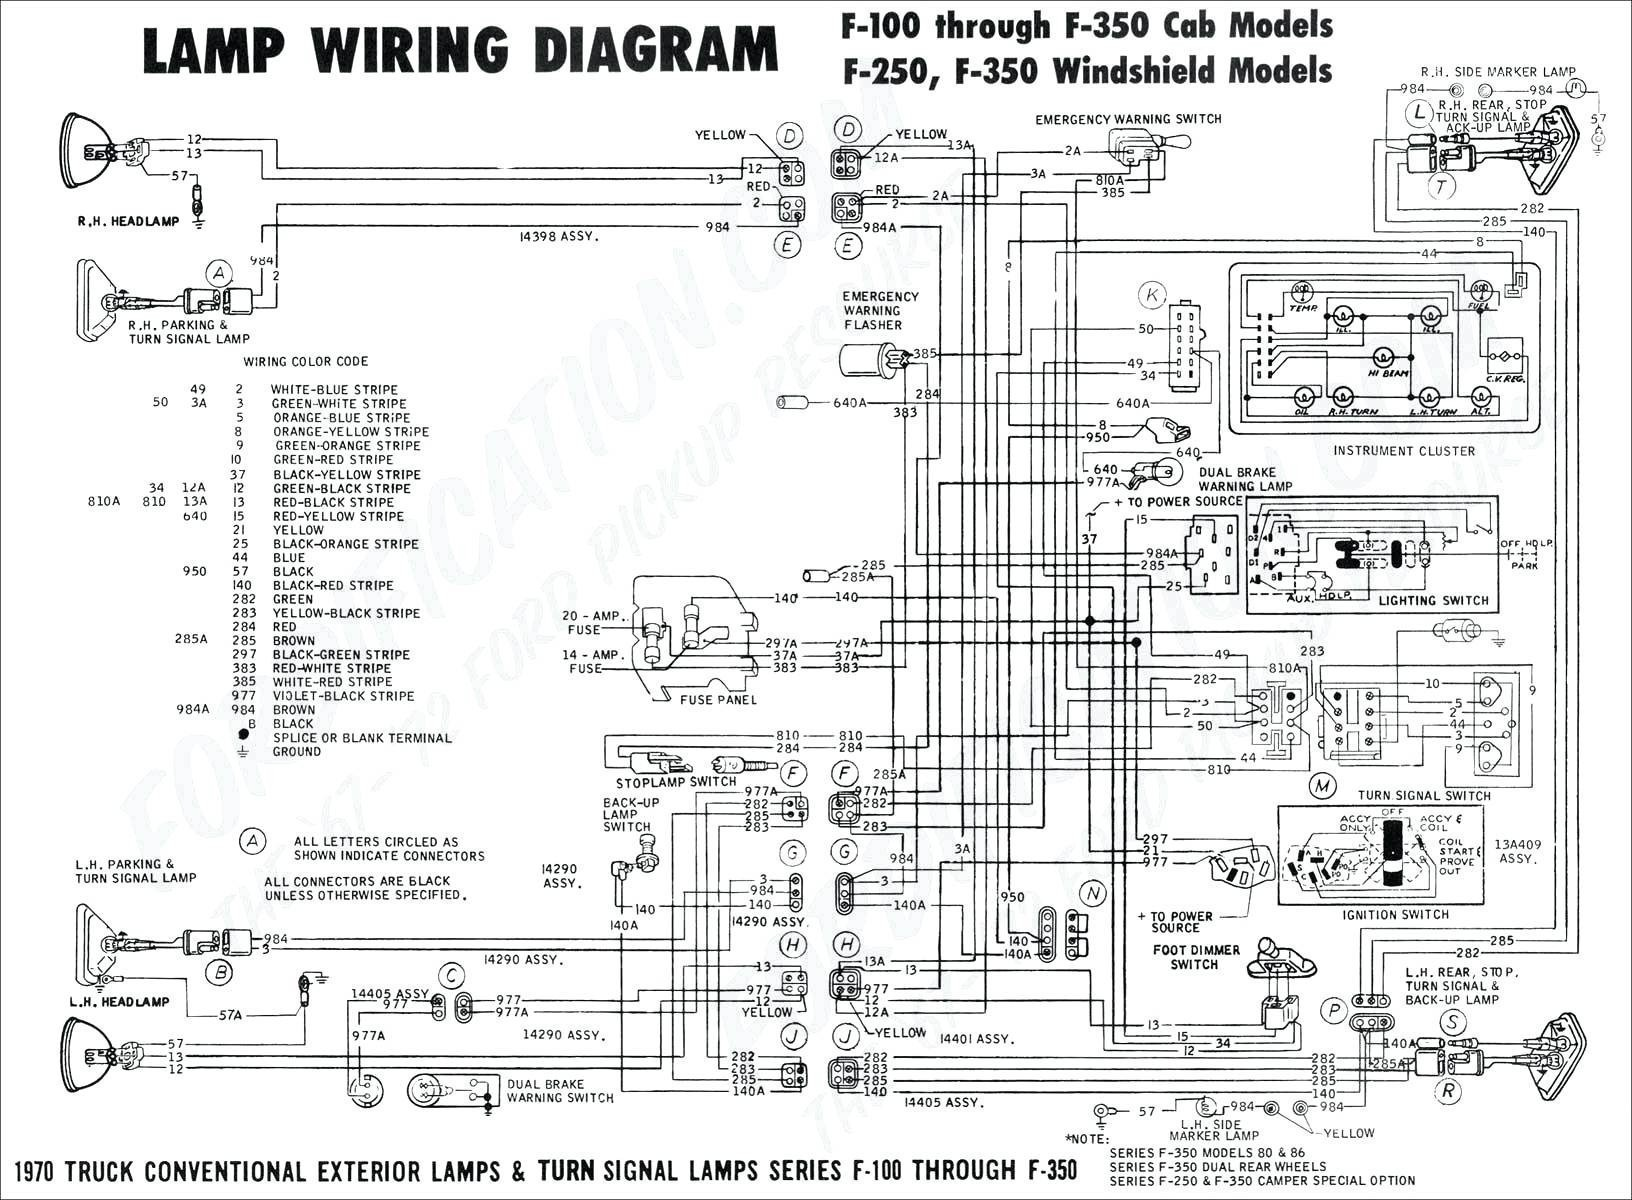 Bargman Breakaway Switch Wiring Diagram Wiring Diagram for Fifth Wheel Trailer Of Bargman Breakaway Switch Wiring Diagram Wiring Diagram for Stock Trailer Save 7 to Wire Horse A